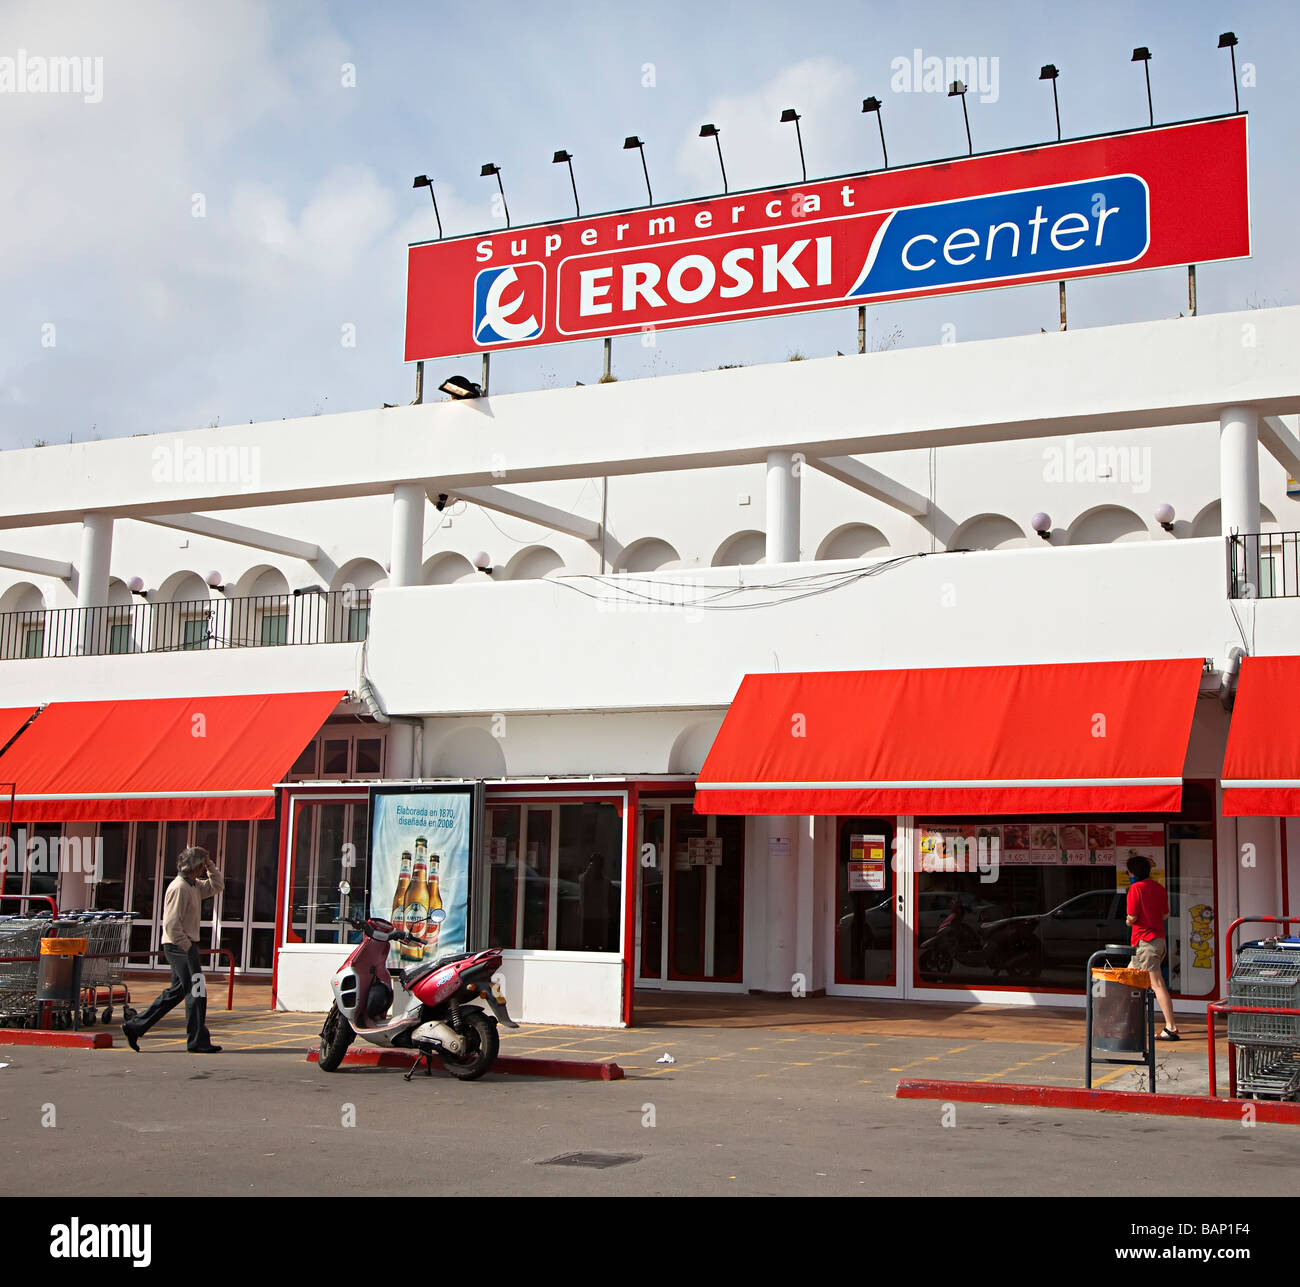 Manacor Shopping Center Eroski Supermarket Mallorca Spain Stock Photo: 23841080